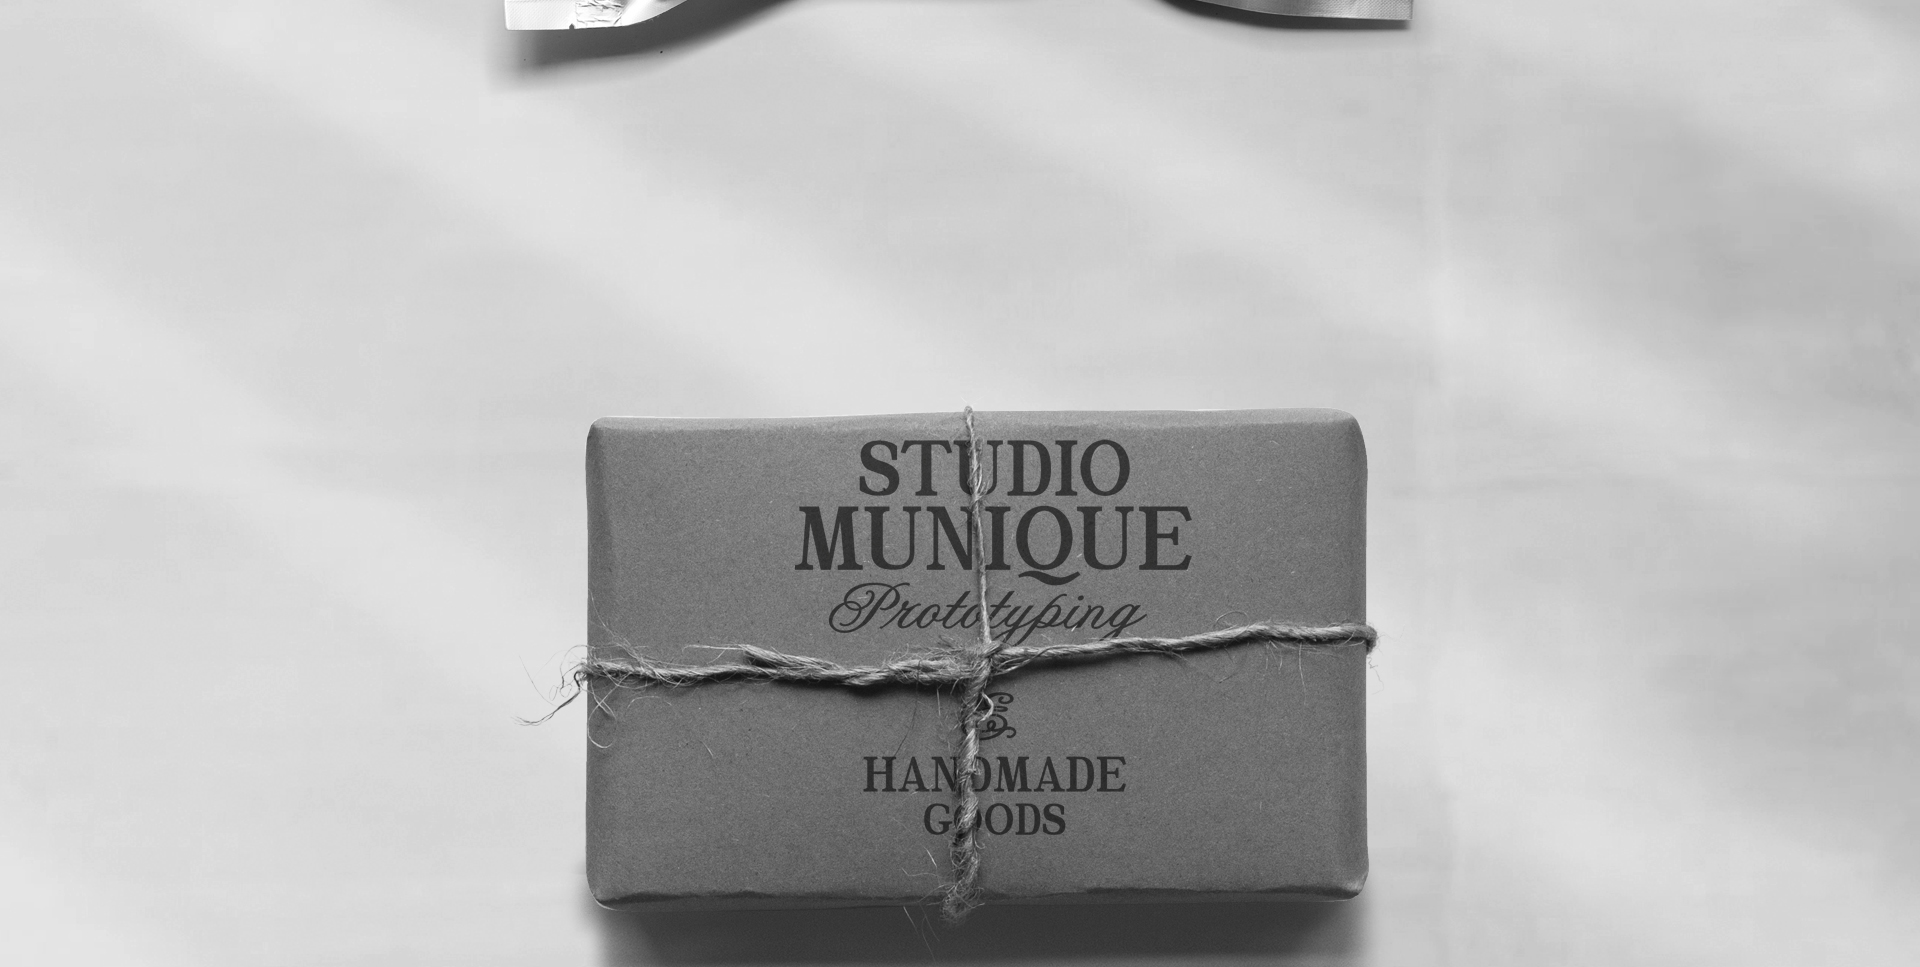 STUDIO-MUNIQUE-PROTOTYPING-HANDMADE-GOODS